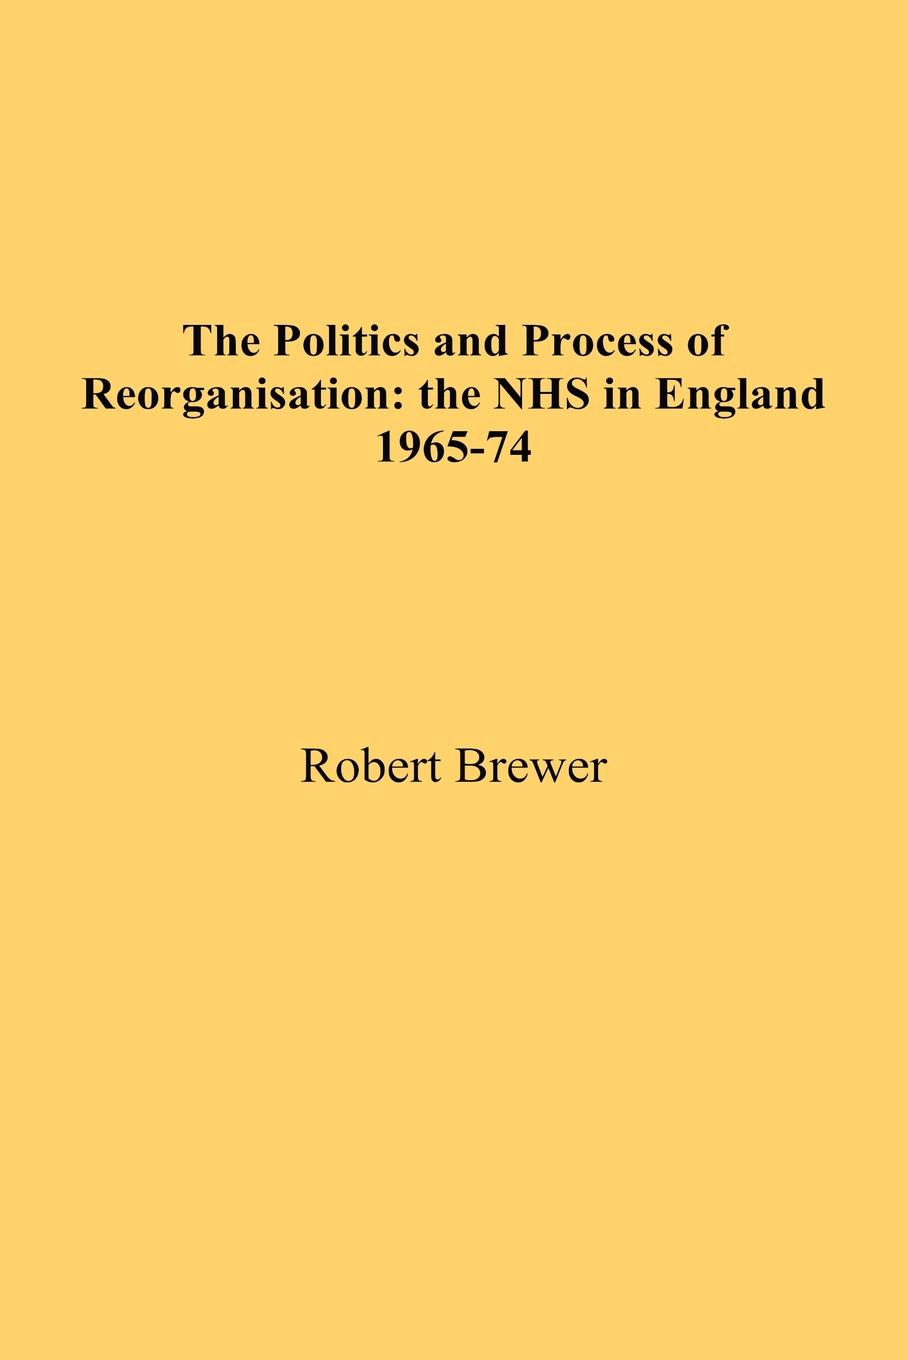 Robert Brewer The Politics and Process of Reorganisation. the NHS in England 1965-74 недорго, оригинальная цена